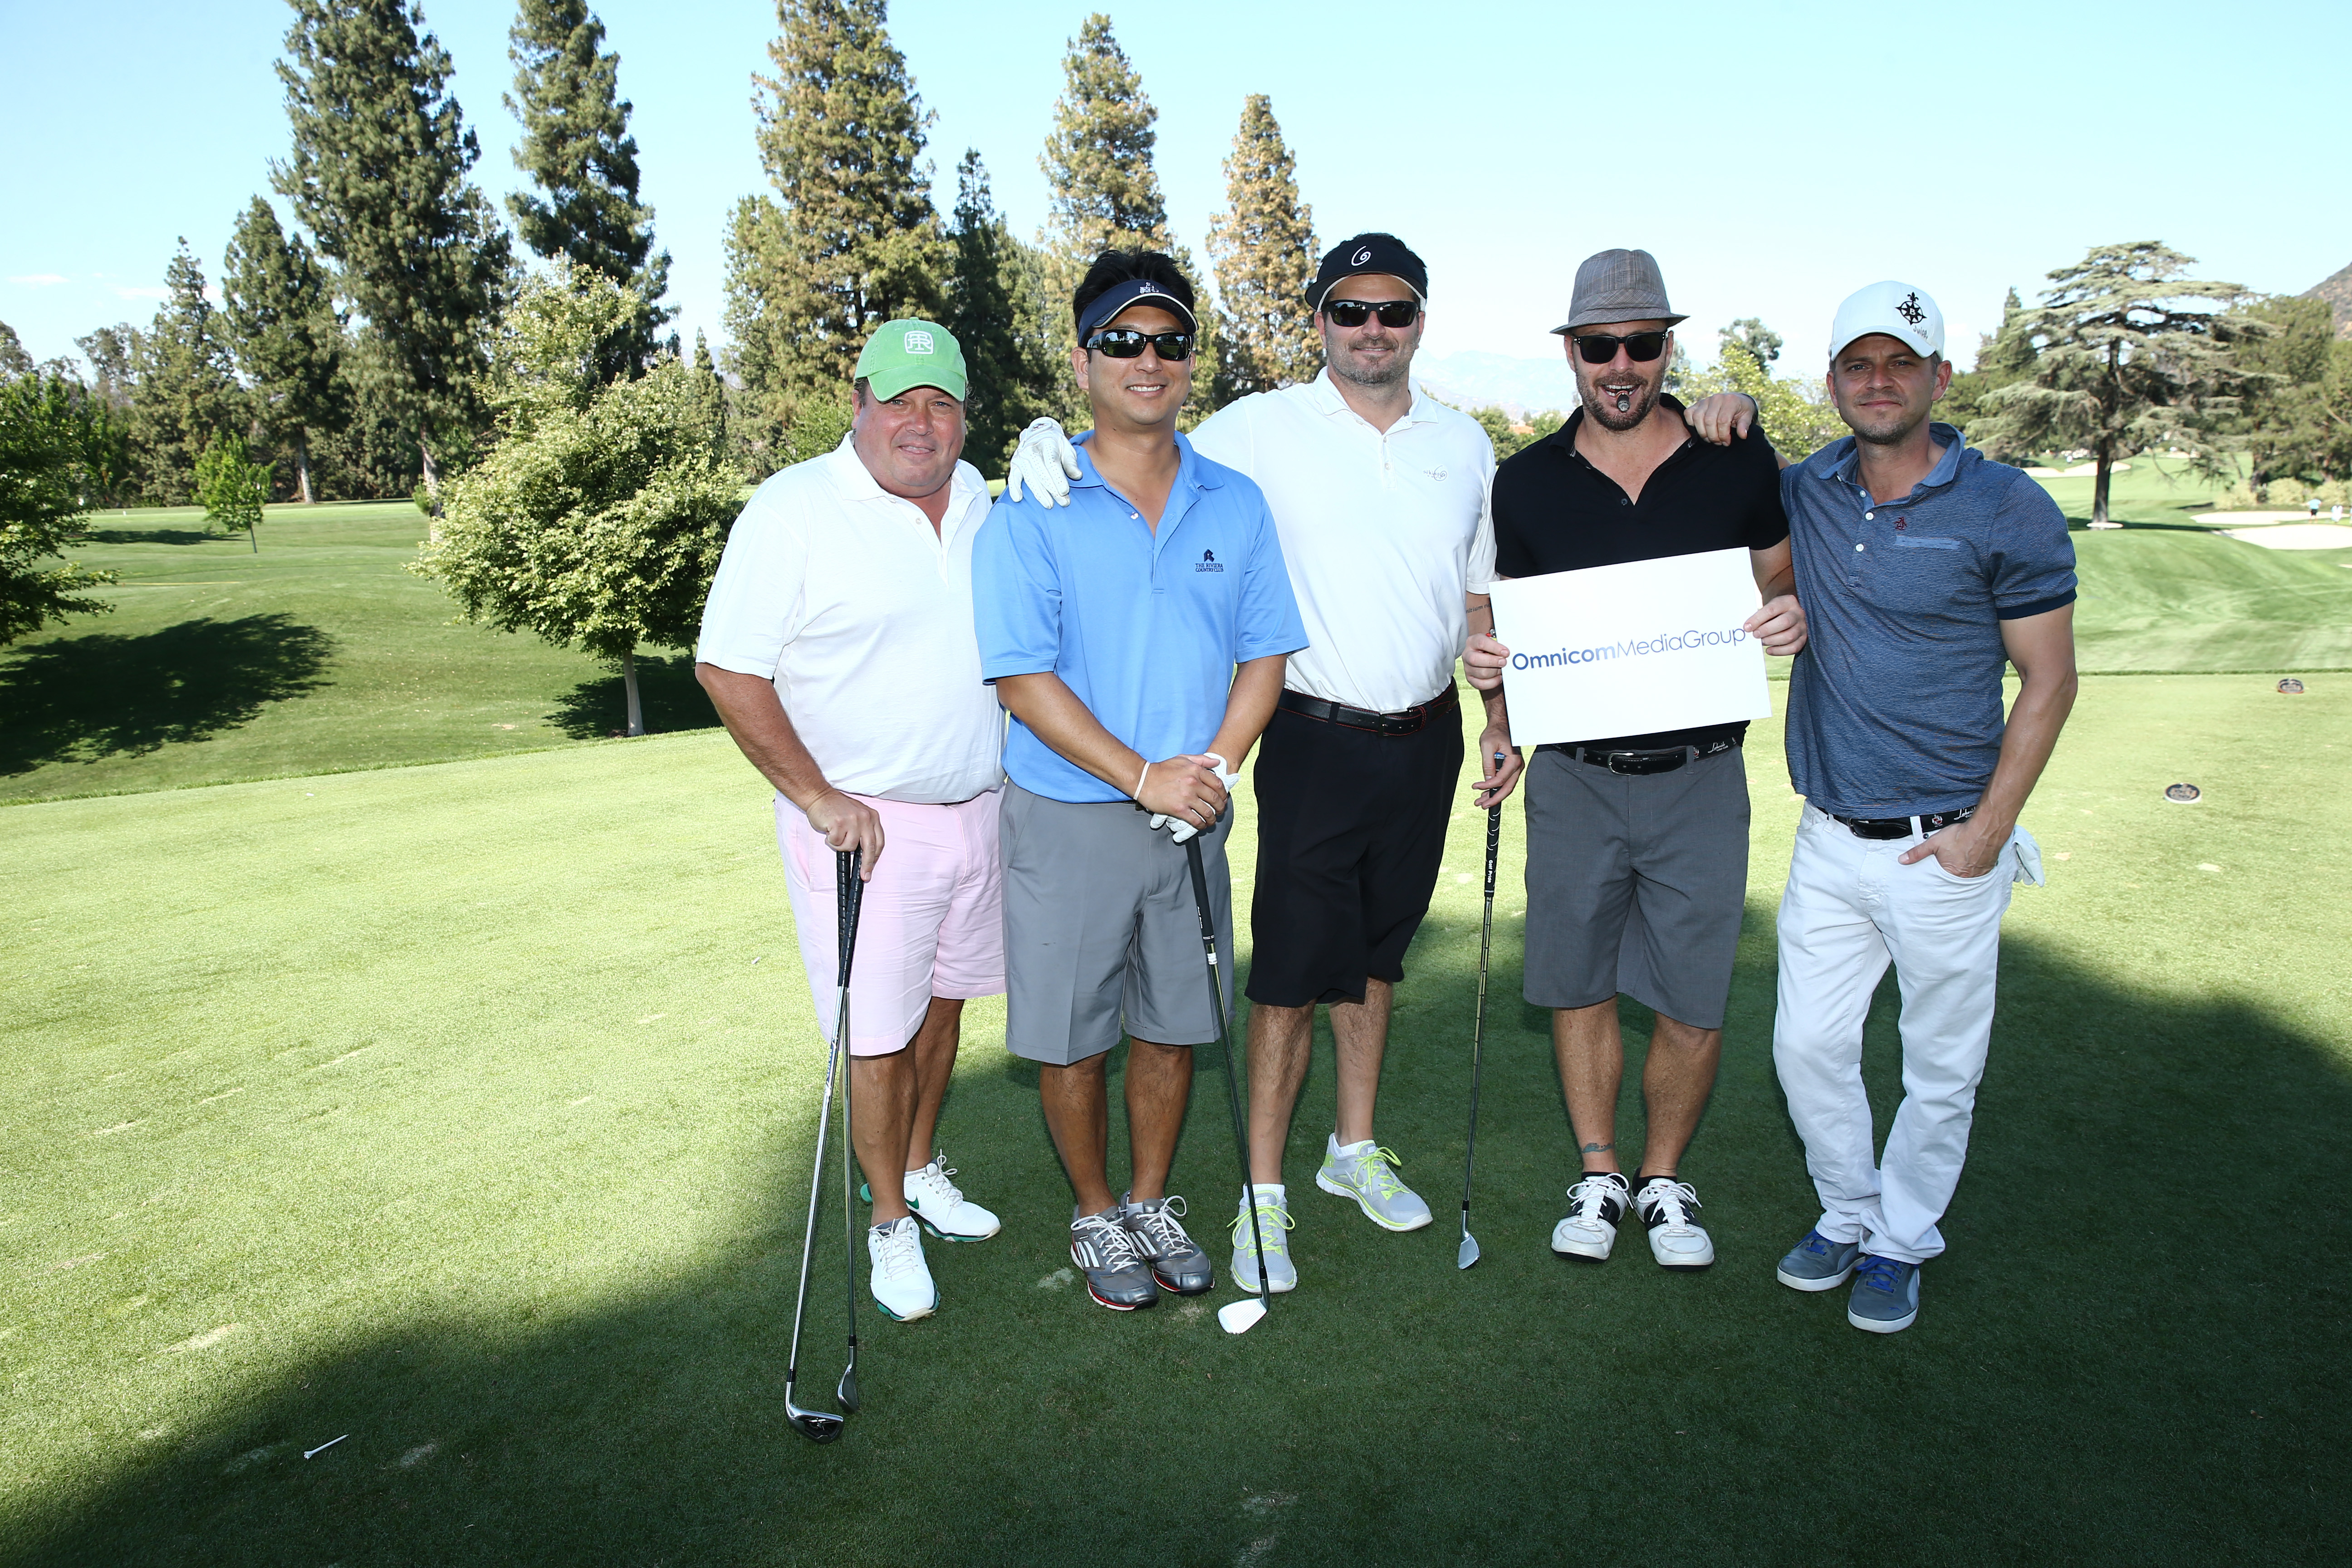 Kris Coontz, Steve Bark, Keith Bolognese, David Calnon, and Carmine Giovinazzo of Team Omnicom Media Group play at the Screen Actors Guild Foundation's 6th Annual Los Angeles Golf Classic on June 8, 2015 in Burbank, California. (Photo by Mark Davis/Getty Images for The Screen Actors Guild Foundation)